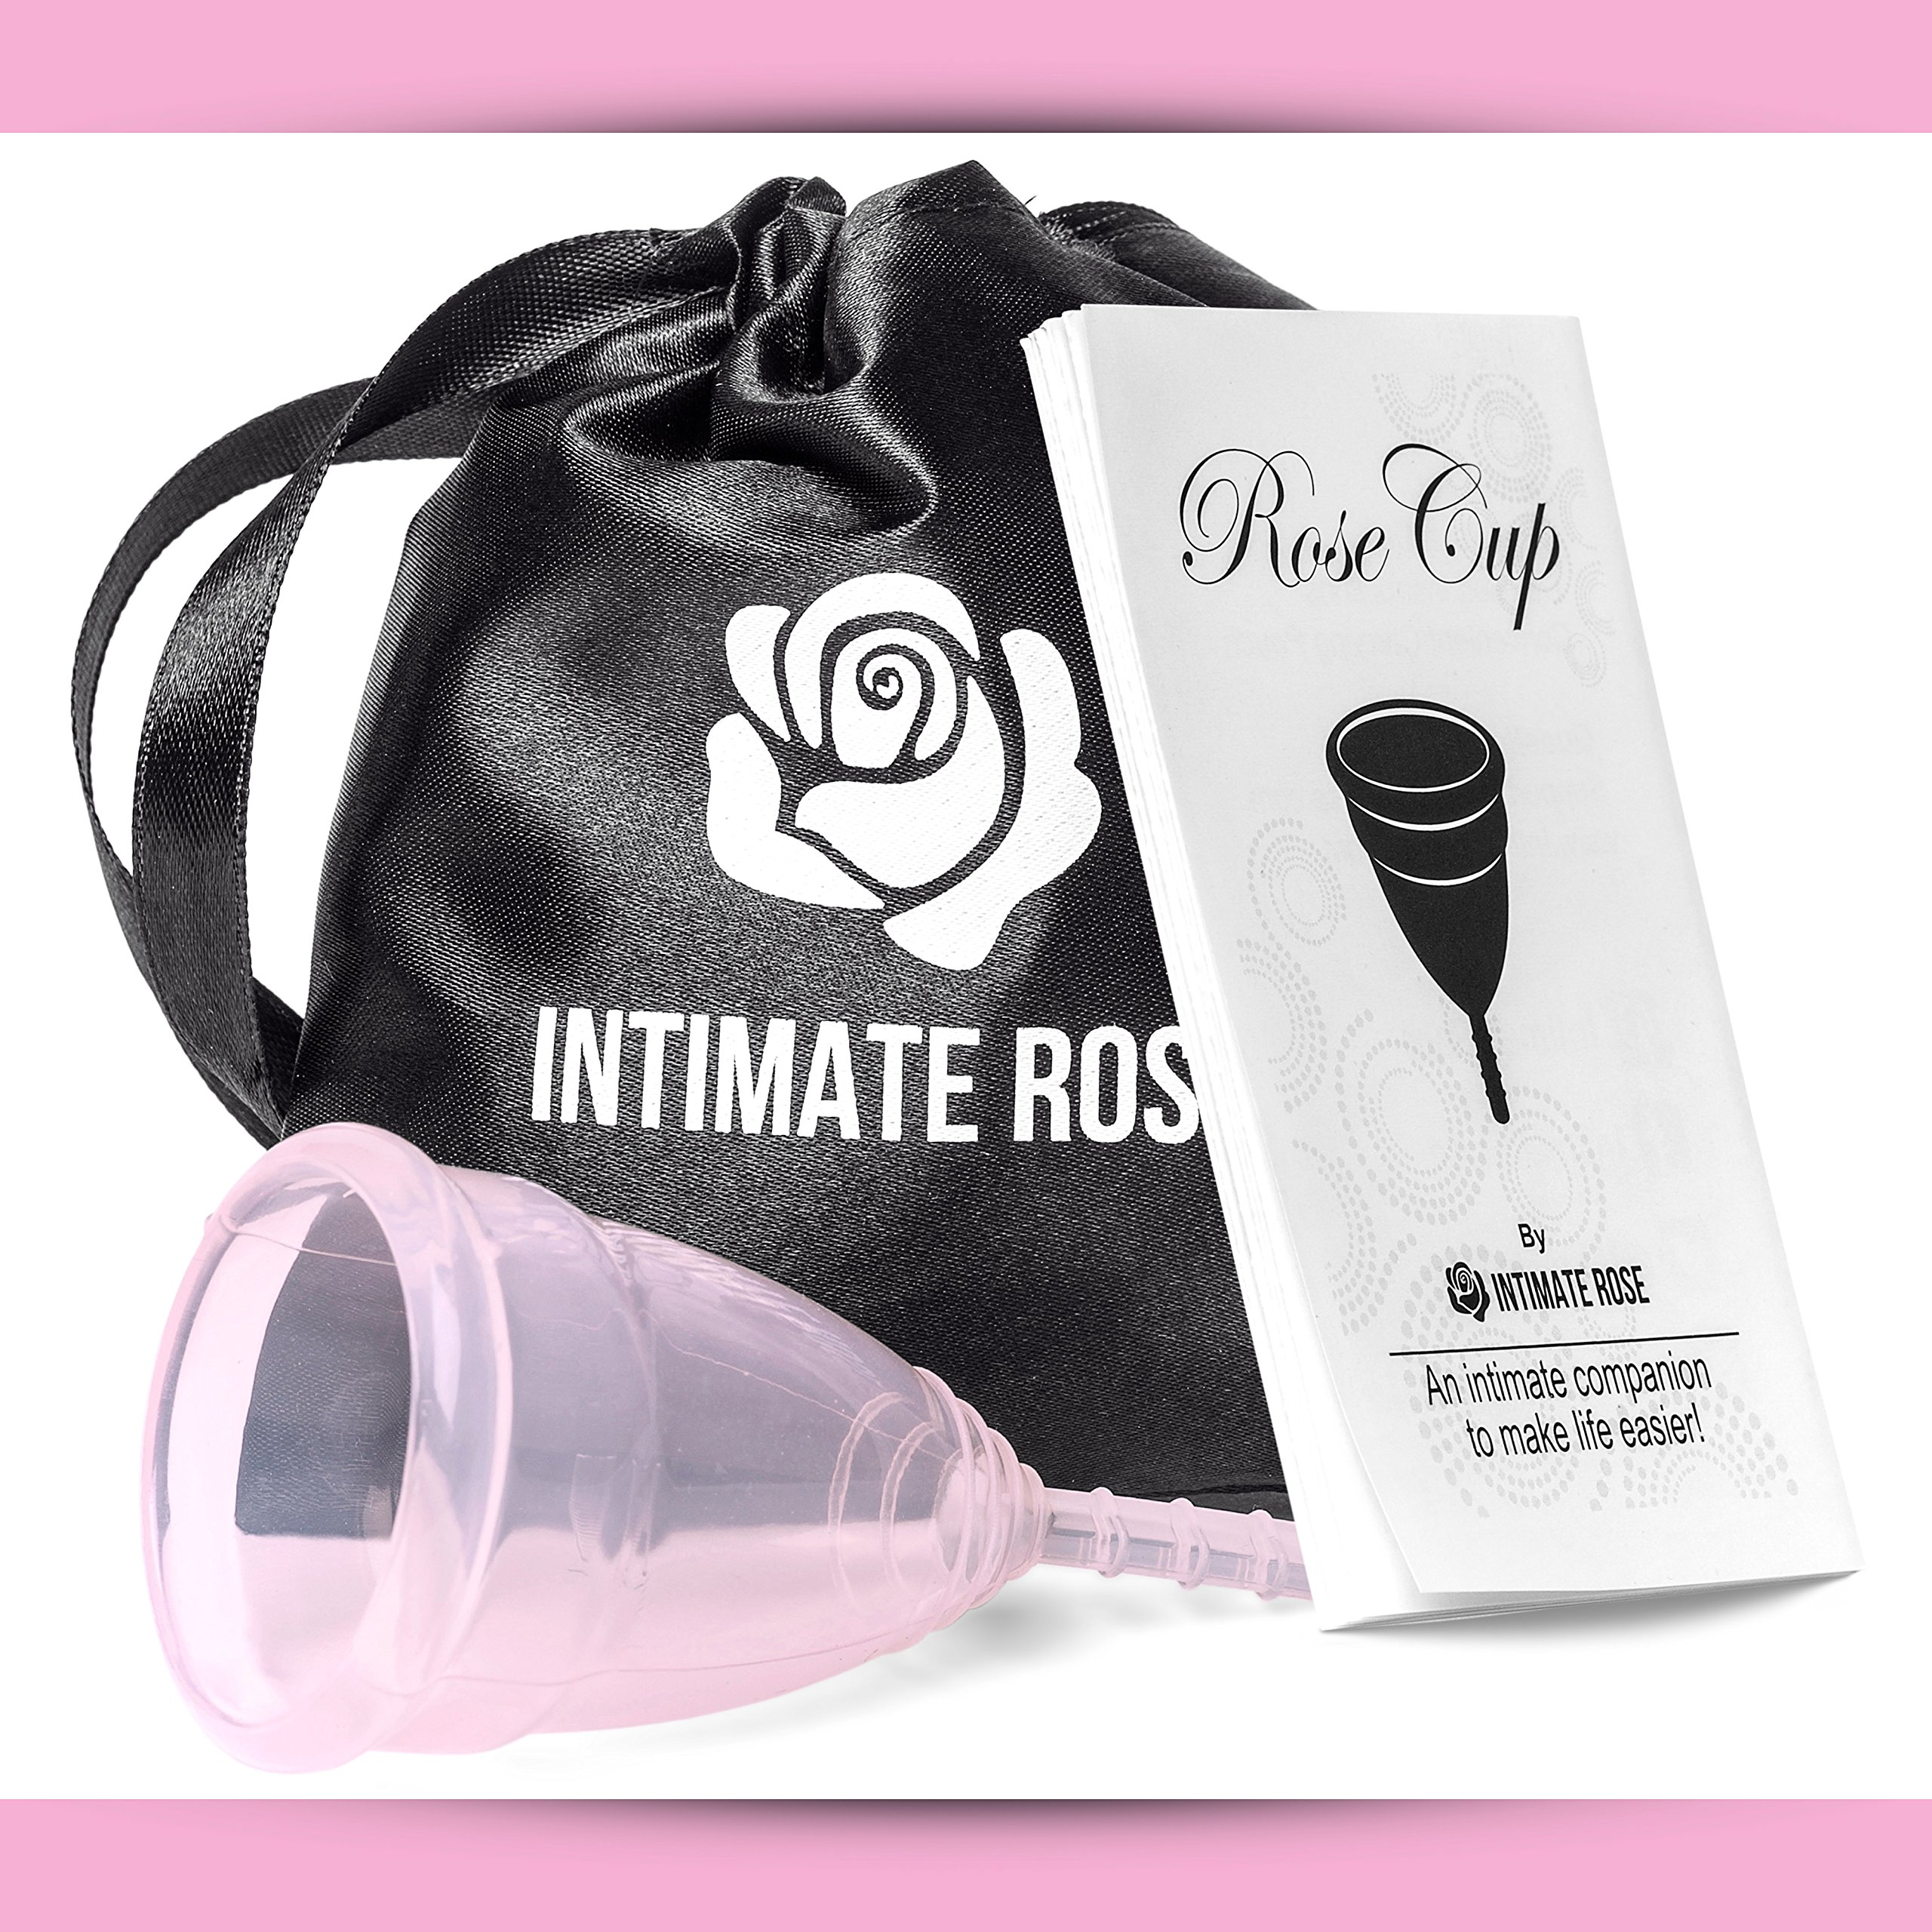 Intimate Rose Menstrual Cup Is Perfect For Beginners - 12 Hour Period Protection With FDA Approved Silicone - More Comfortable Than Others - Eco-Friendly Alternative to Pads & Tampons